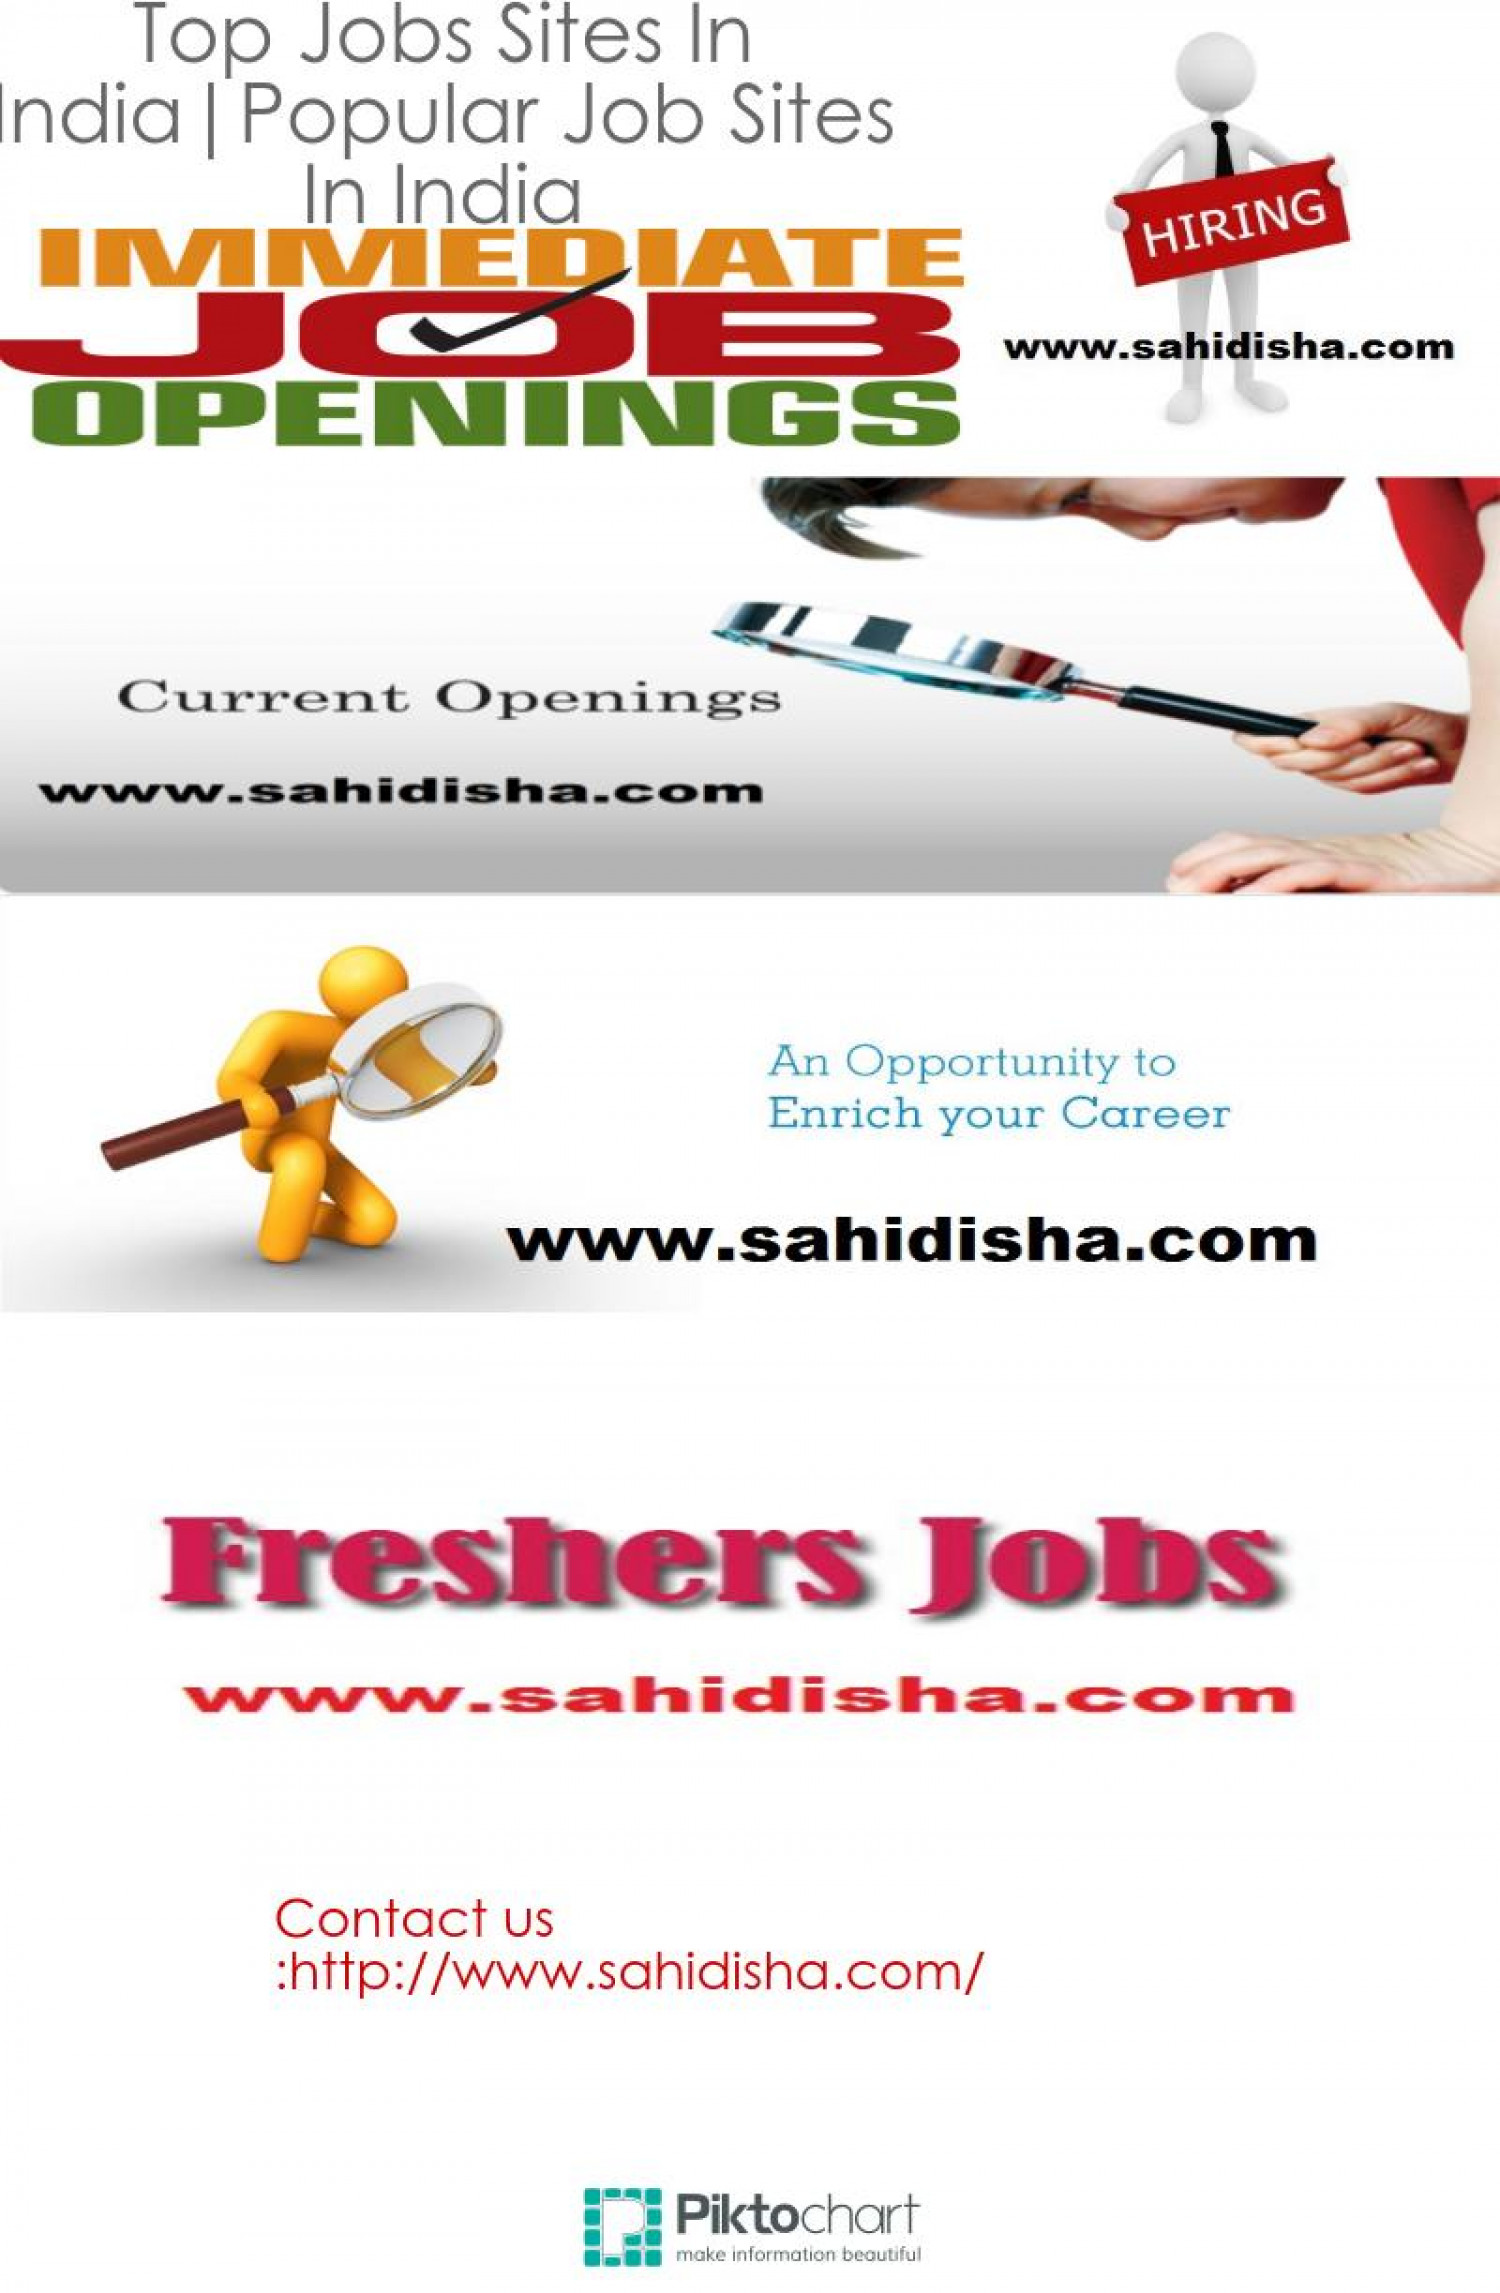 Top Jobs Sites In India|Popular Job Sites In India | Visual.ly